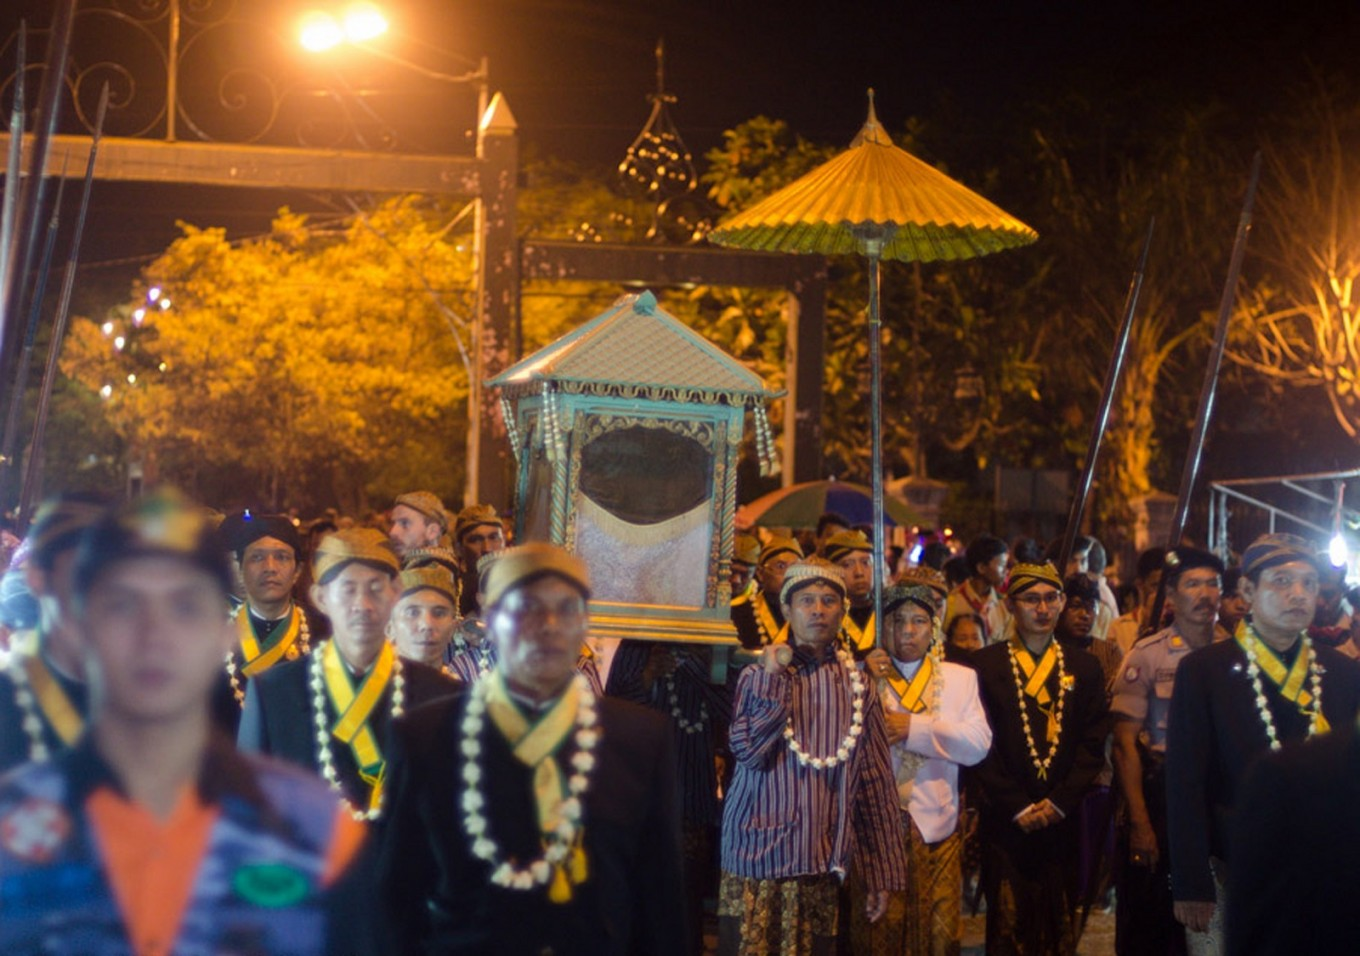 The procession moves along a 3-kilometer route around the walls of Mangkunegara Palace.